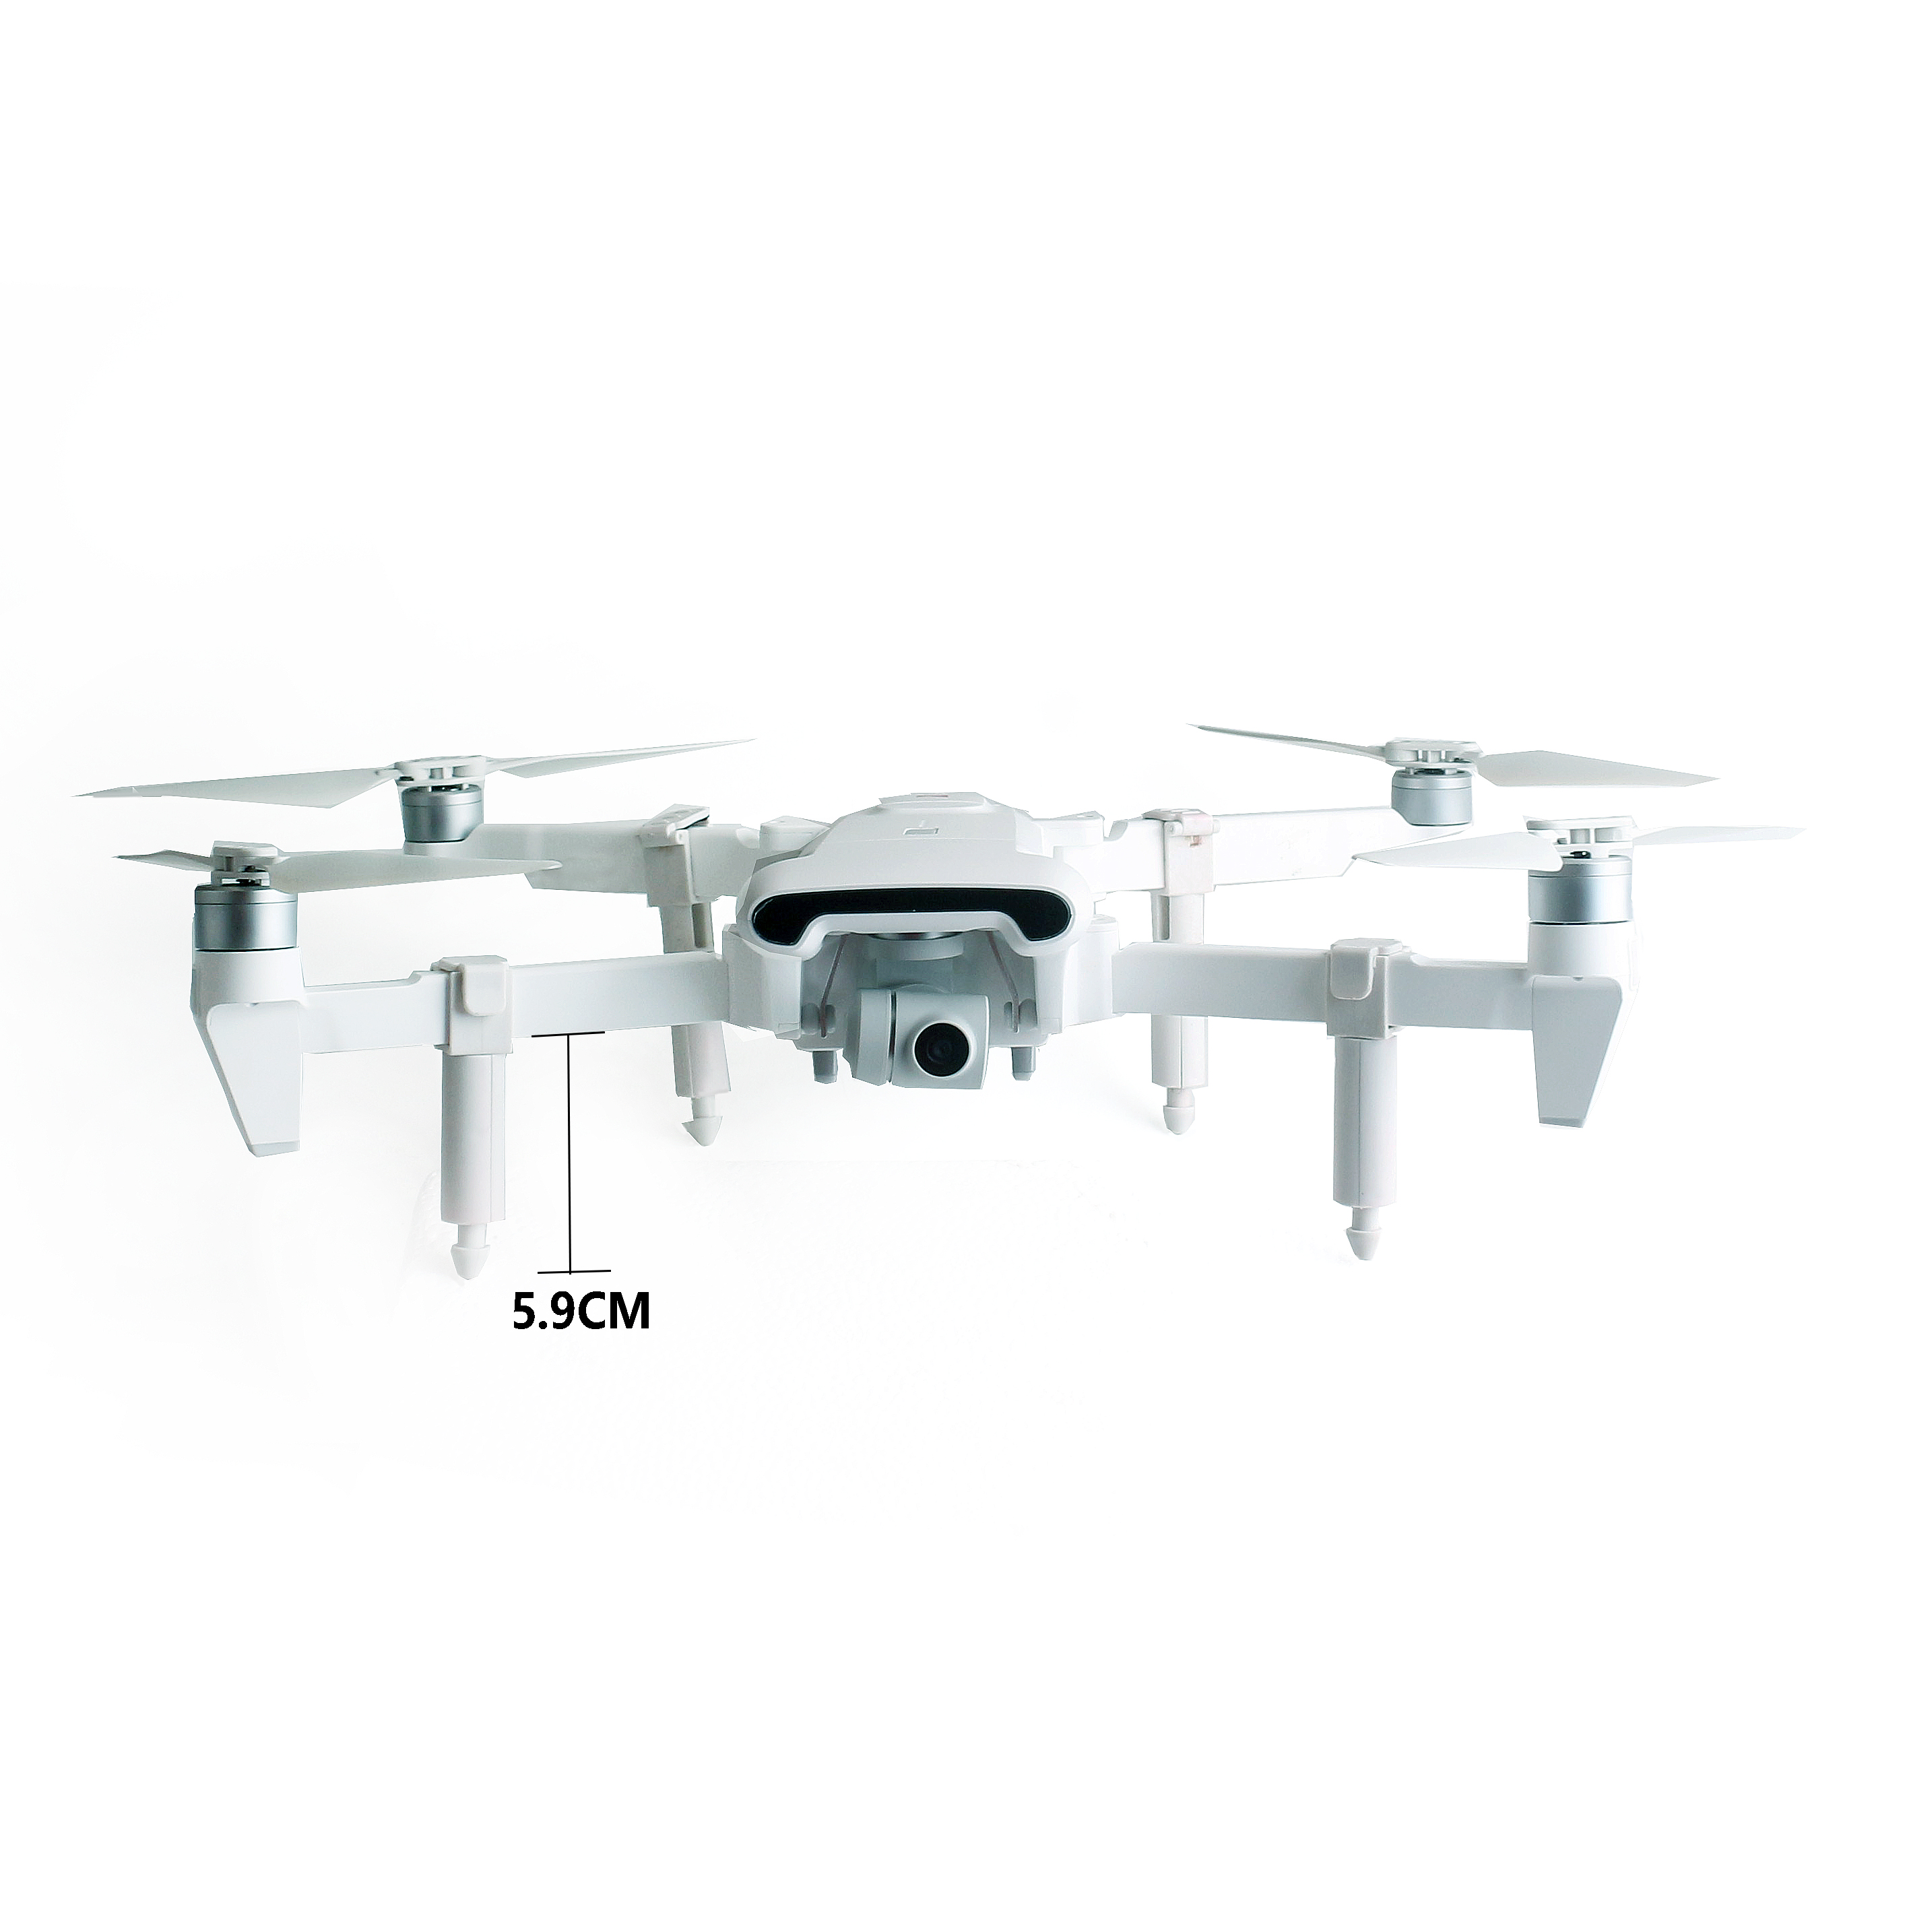 FIMI X8SE 2019/ 2020 Version Camera Drone RC Helicopter Increased Tripod with Spring Hidden Mode Parts white